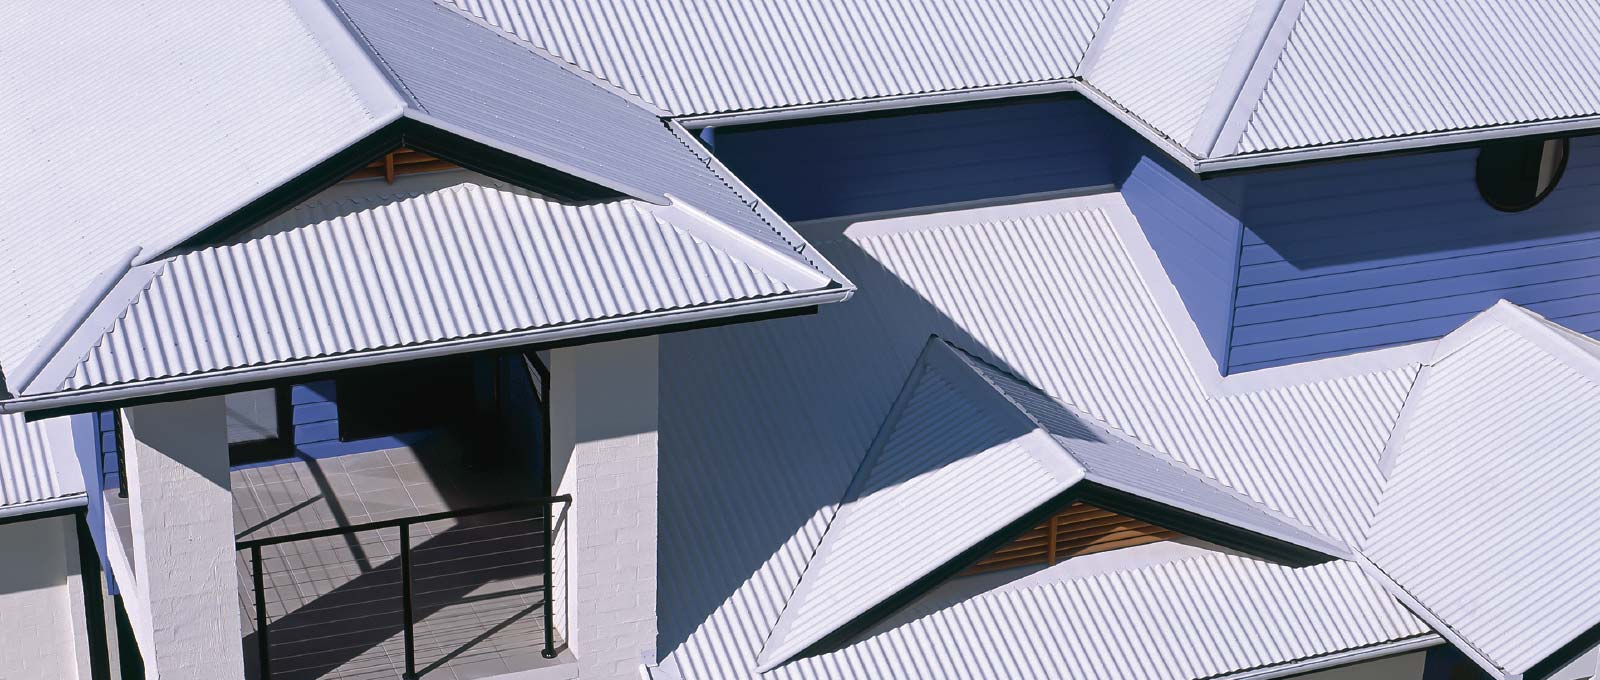 Blog-014-Roofing.jpg